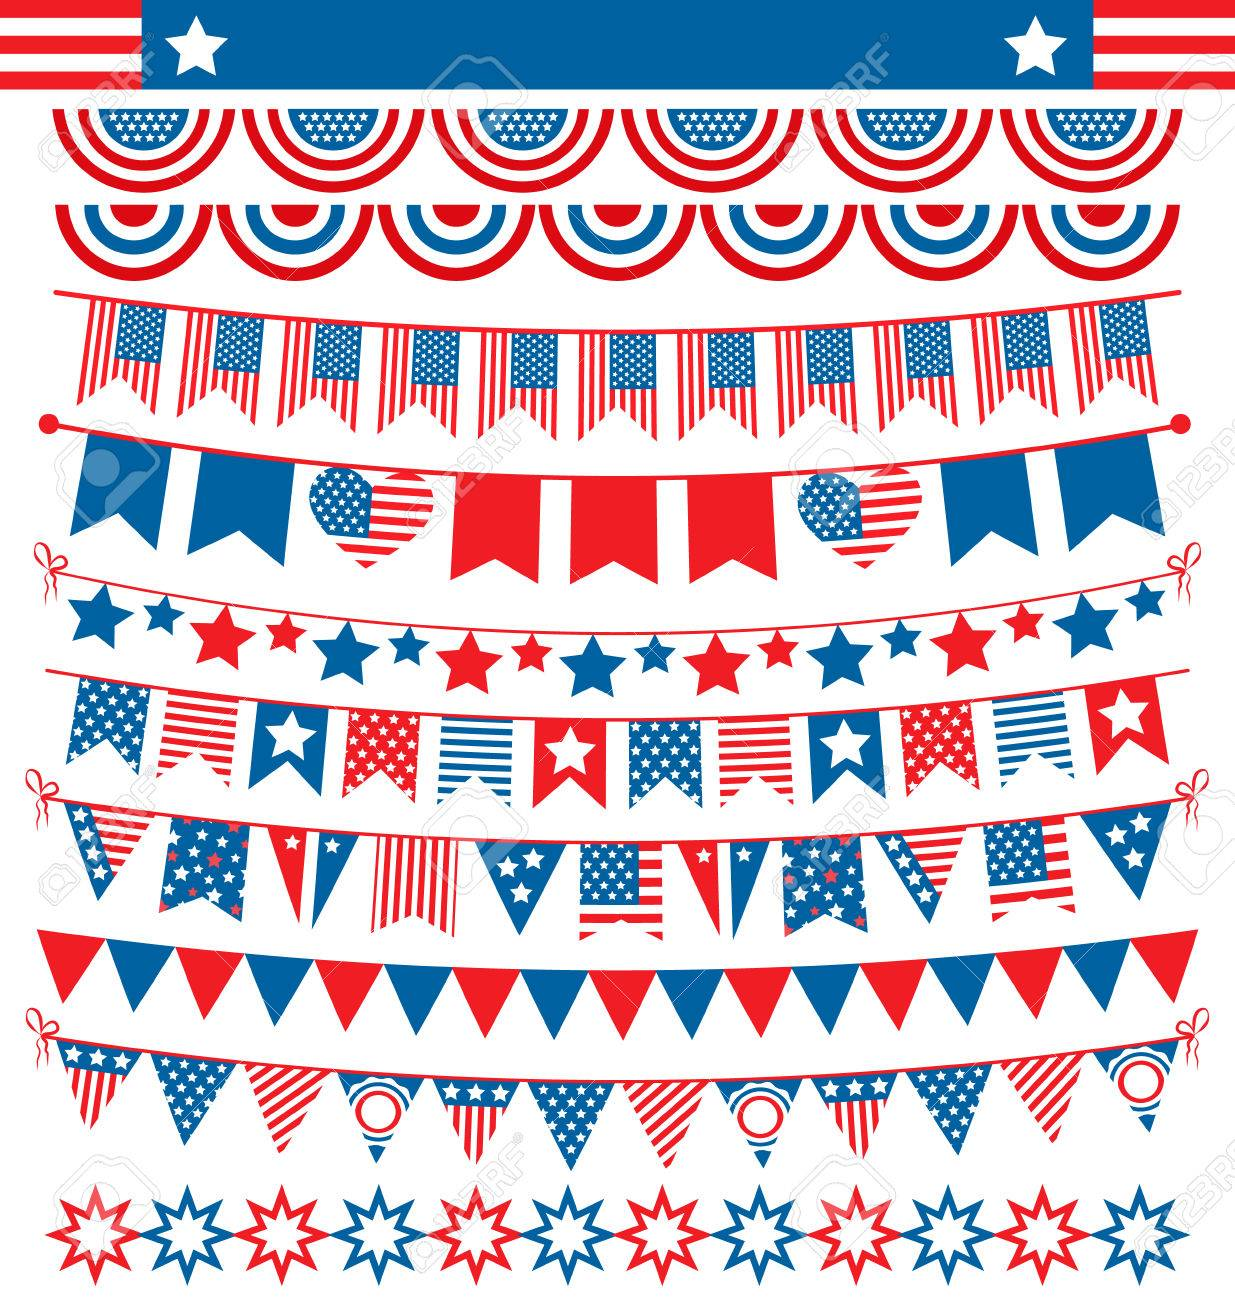 USA celebration buntings garlands flags flat national set for independence day isolated on white background - 41448211